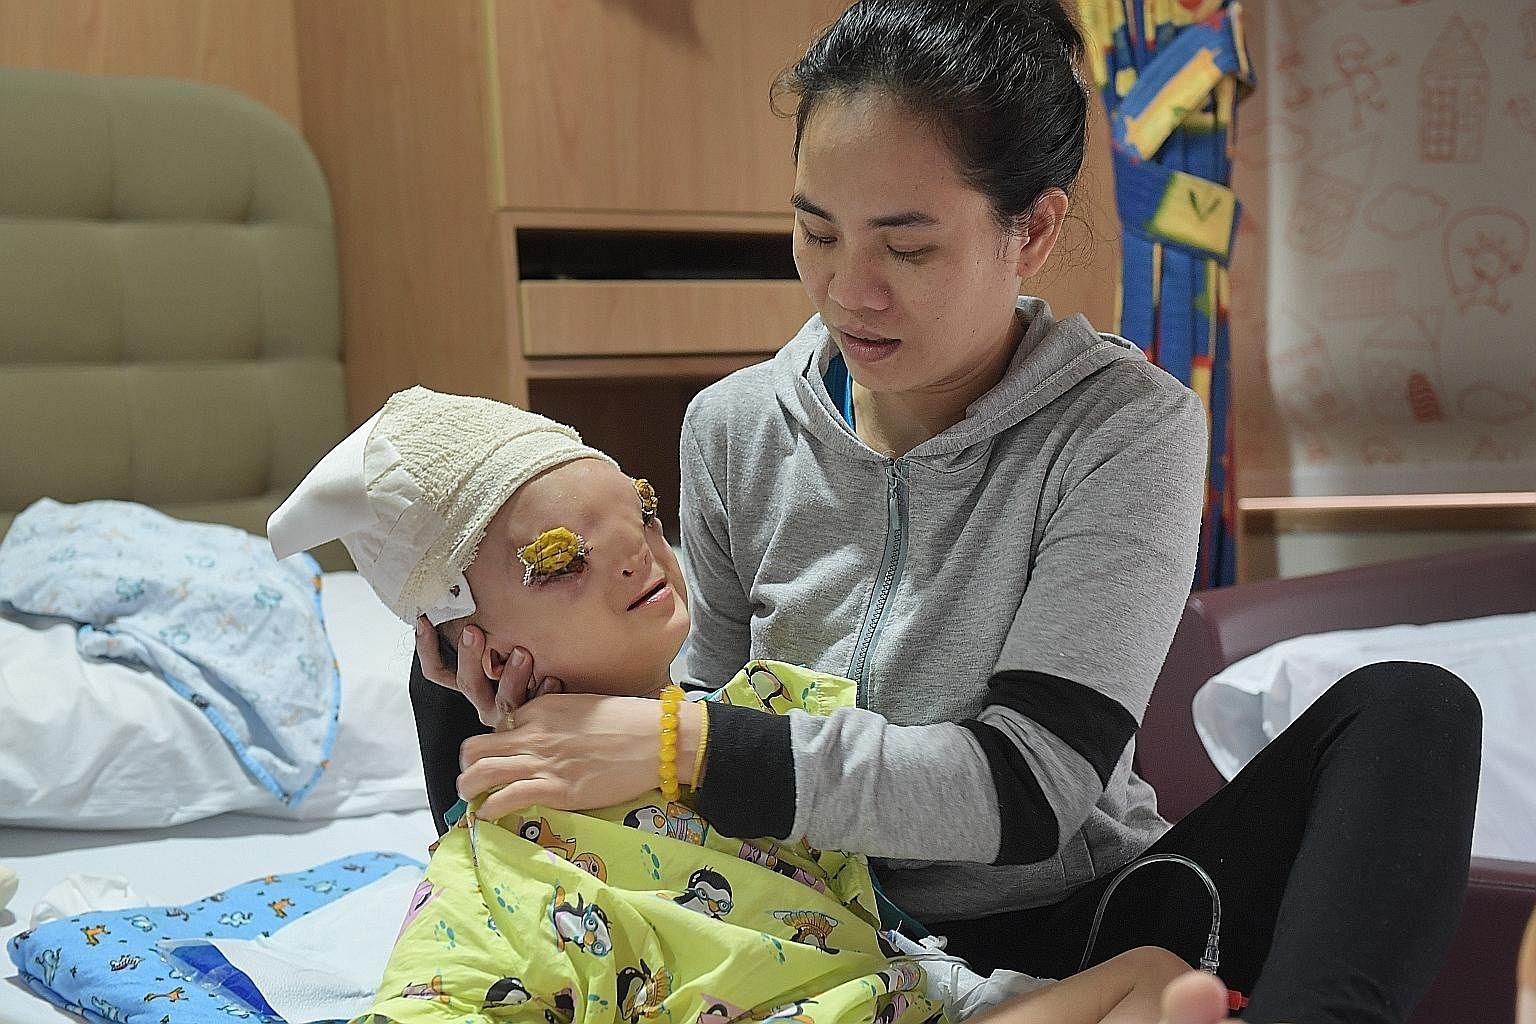 Ton Nu Hoang Dung, seen here after surgery with her mother, Madam Hoang Thi Thuy Linh, was born with a rare deformity where a part of her brain protrudes from a gap in her skull into her face, pushing down her eyes. The medical team took on the case